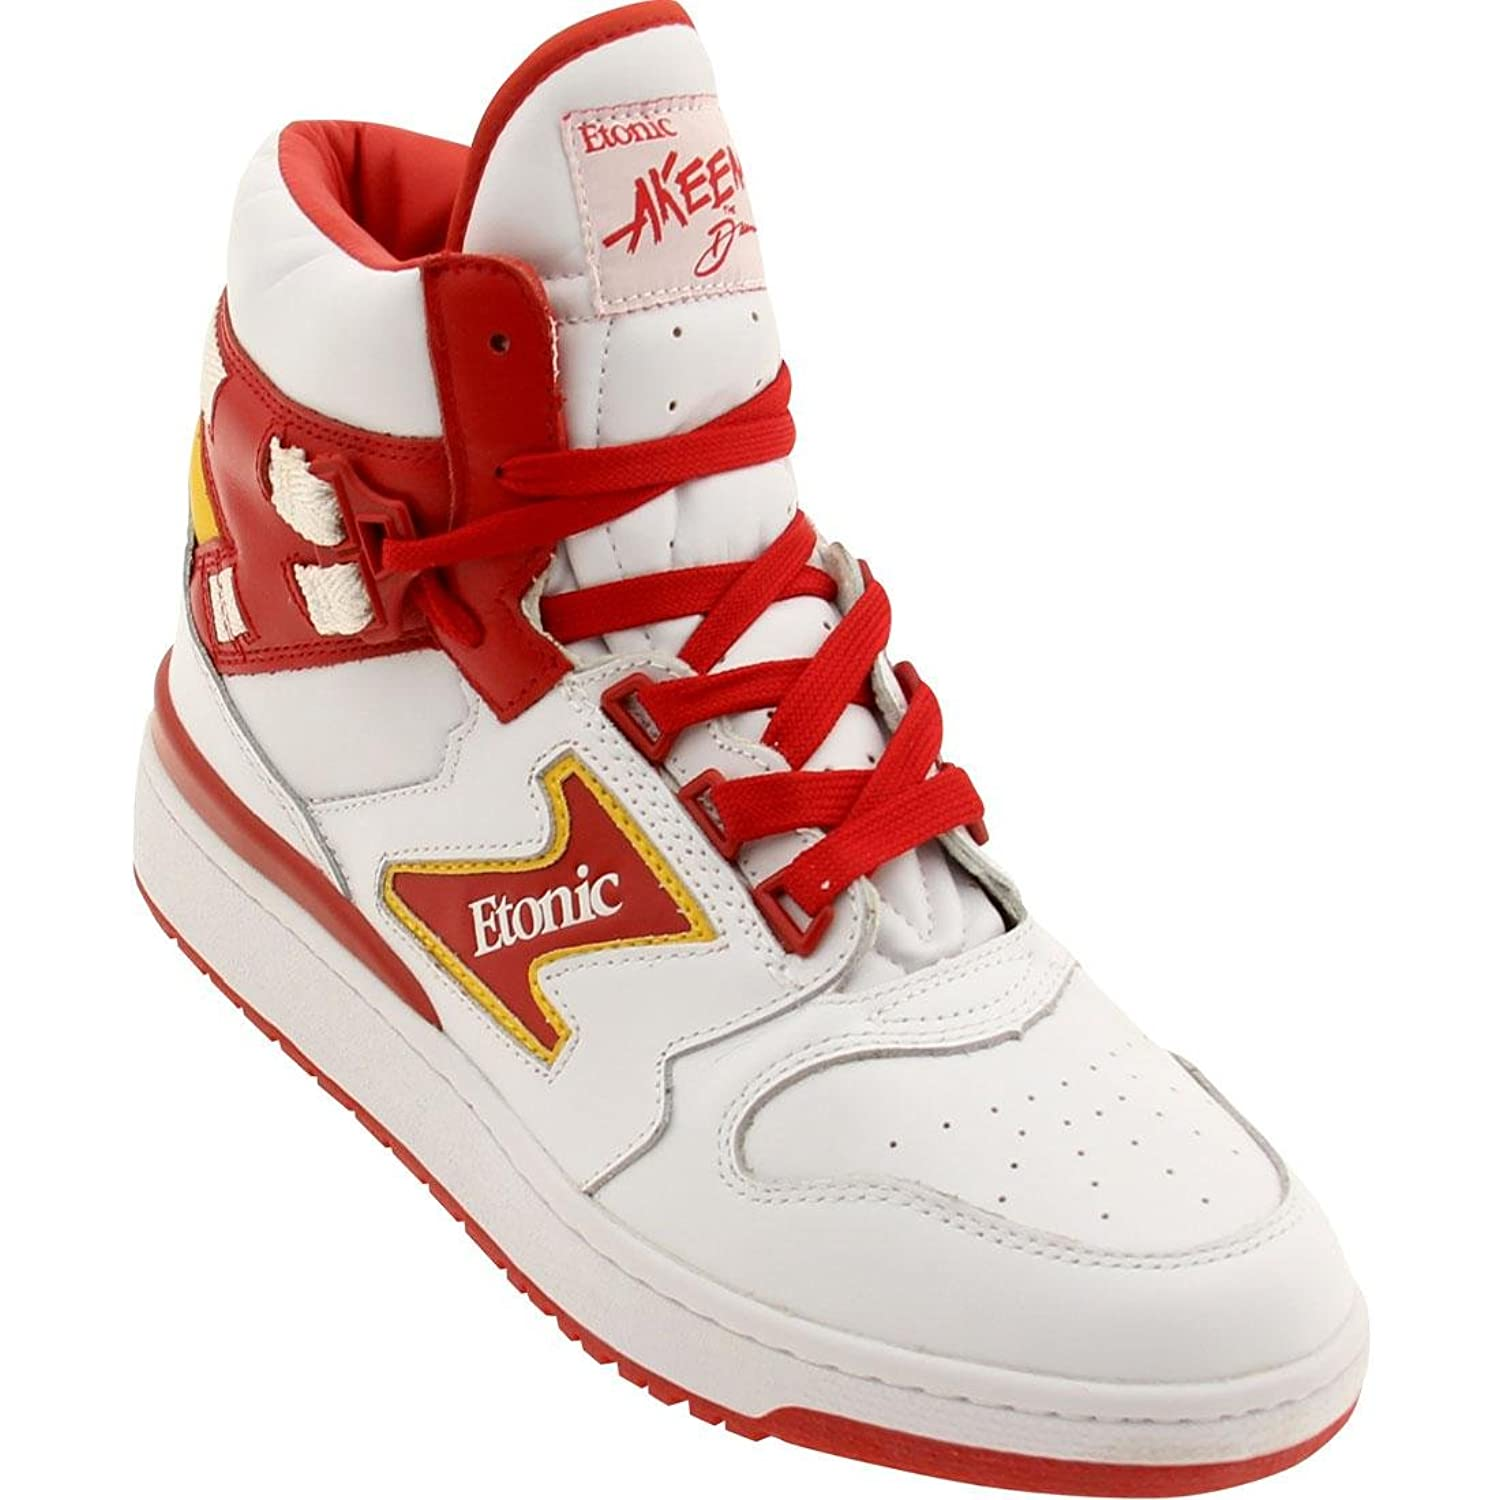 bc7f71980a40 Etonic Akeem the Dream Men s Shoes White Red Yellow EML14F-01 30%OFF ...